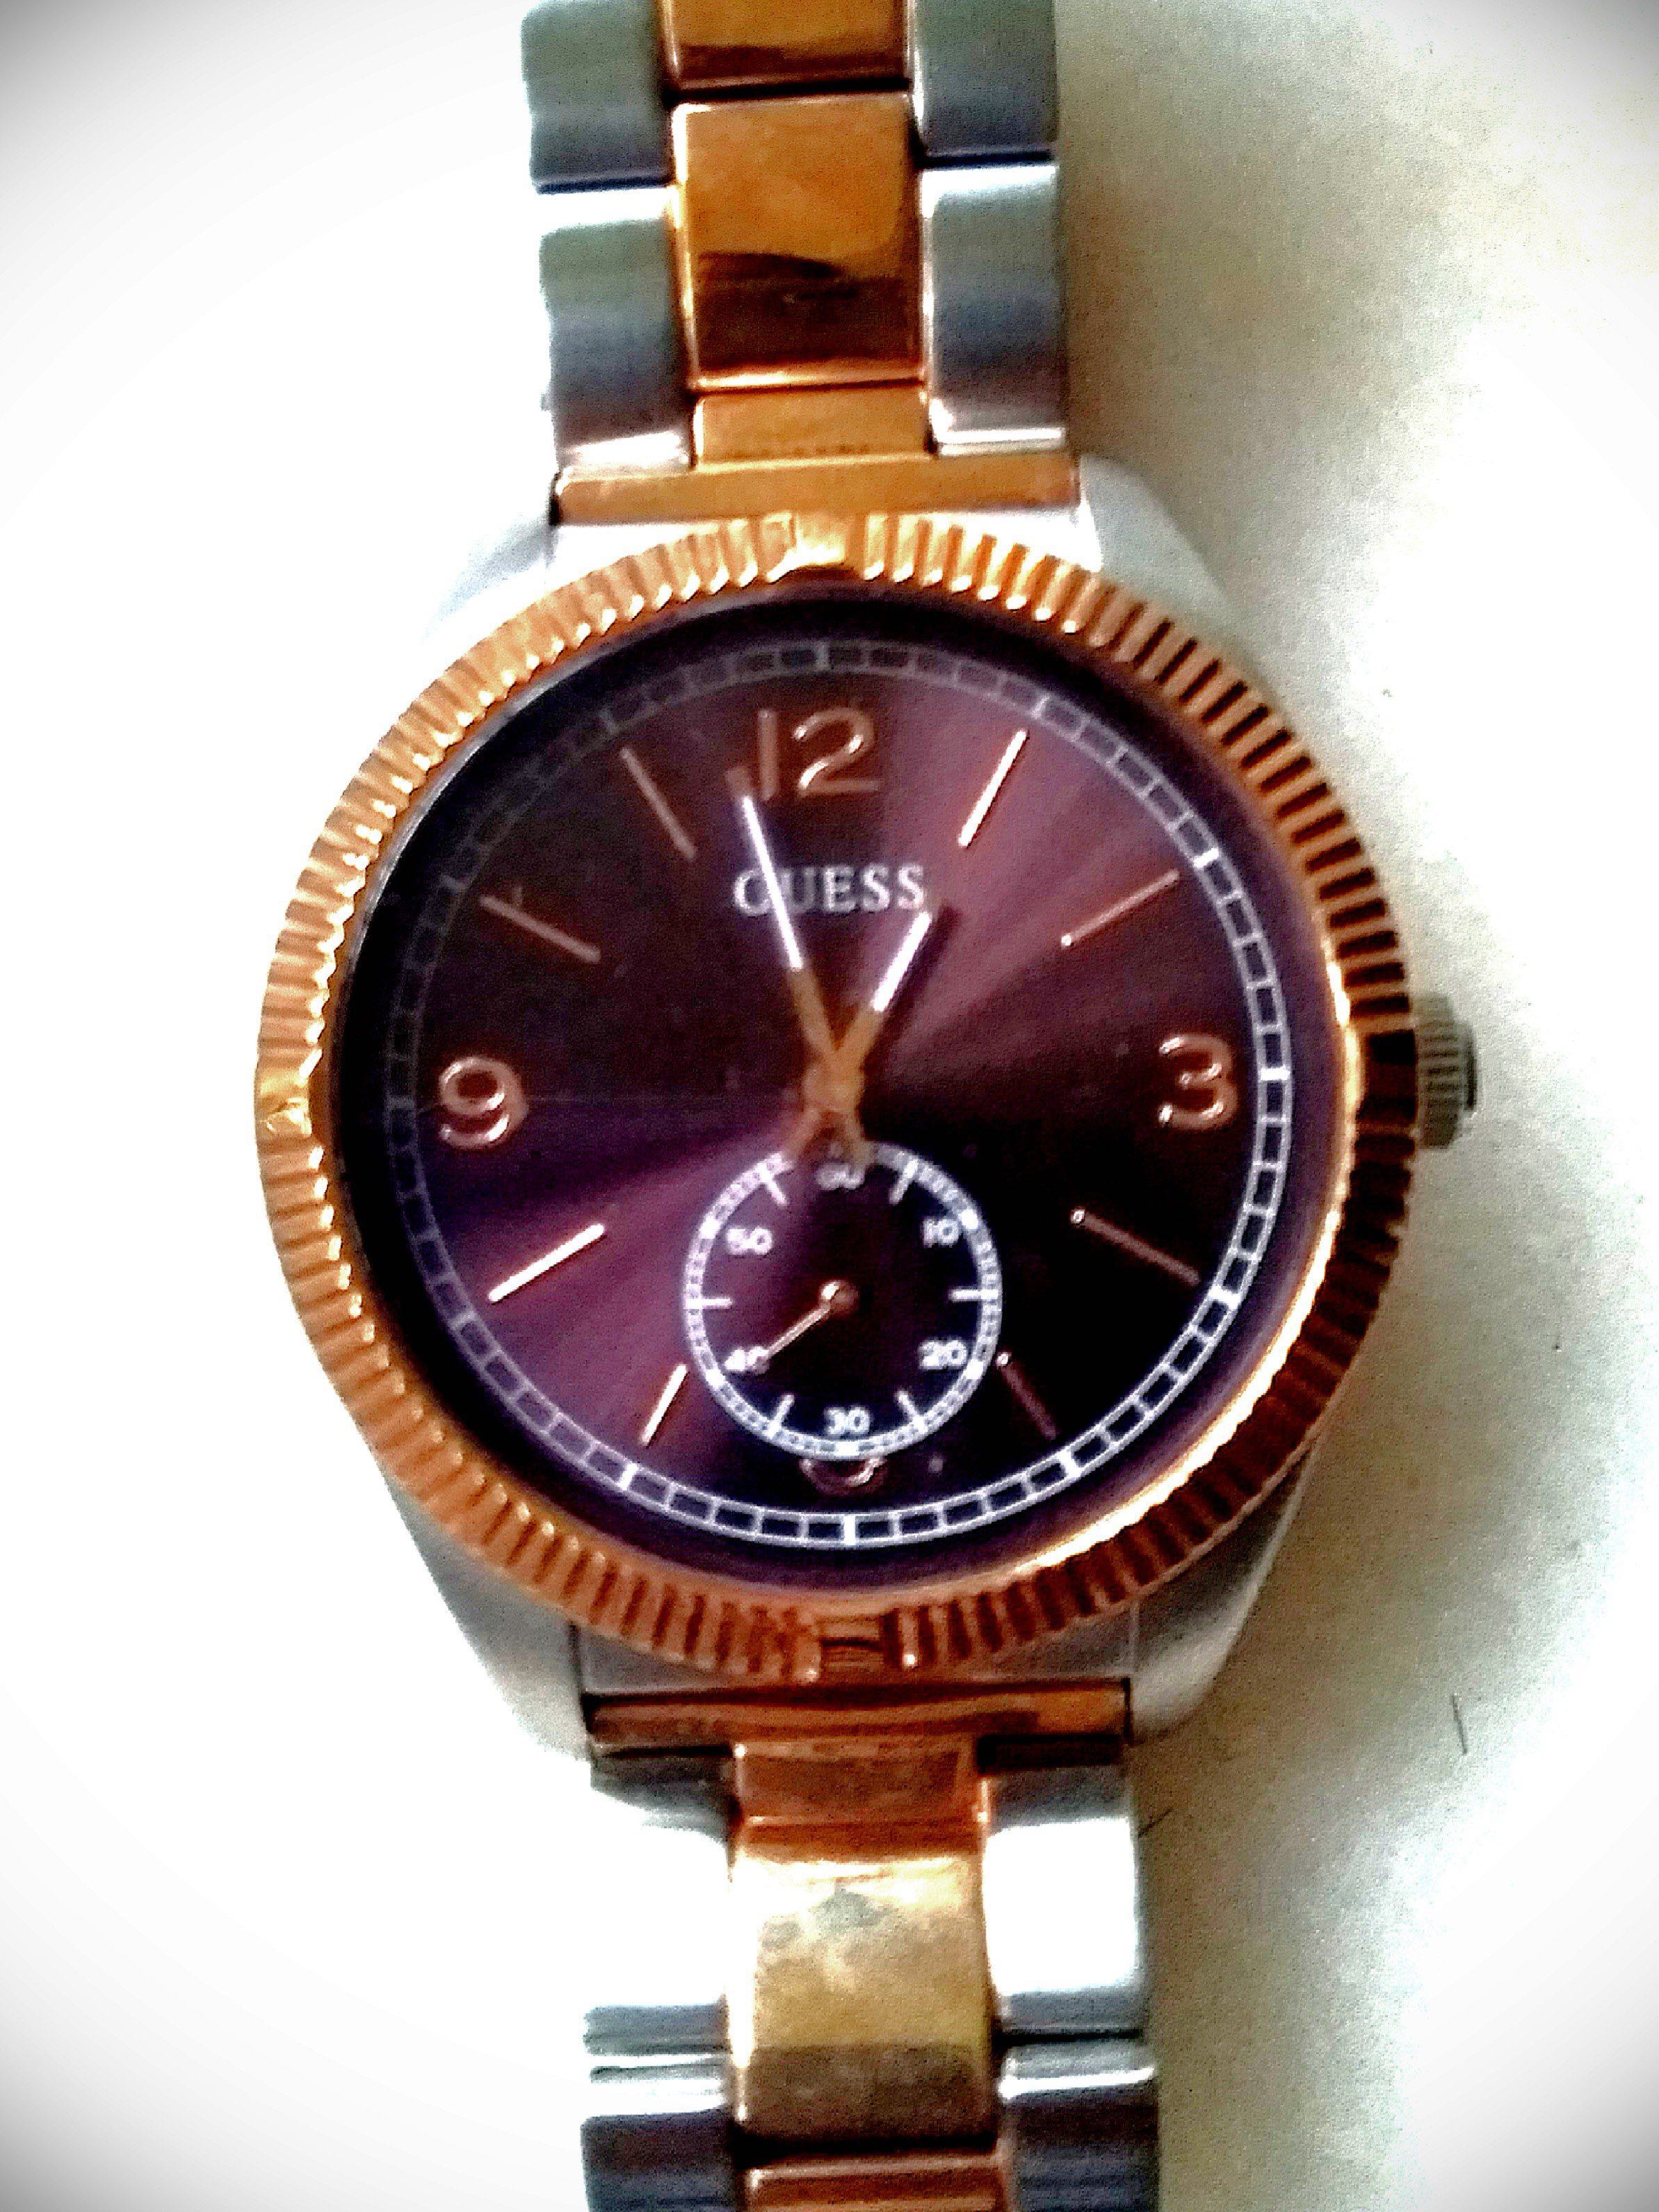 2c869b923c96 100% authentic Men s Guess watch for dirt cheap price!!!